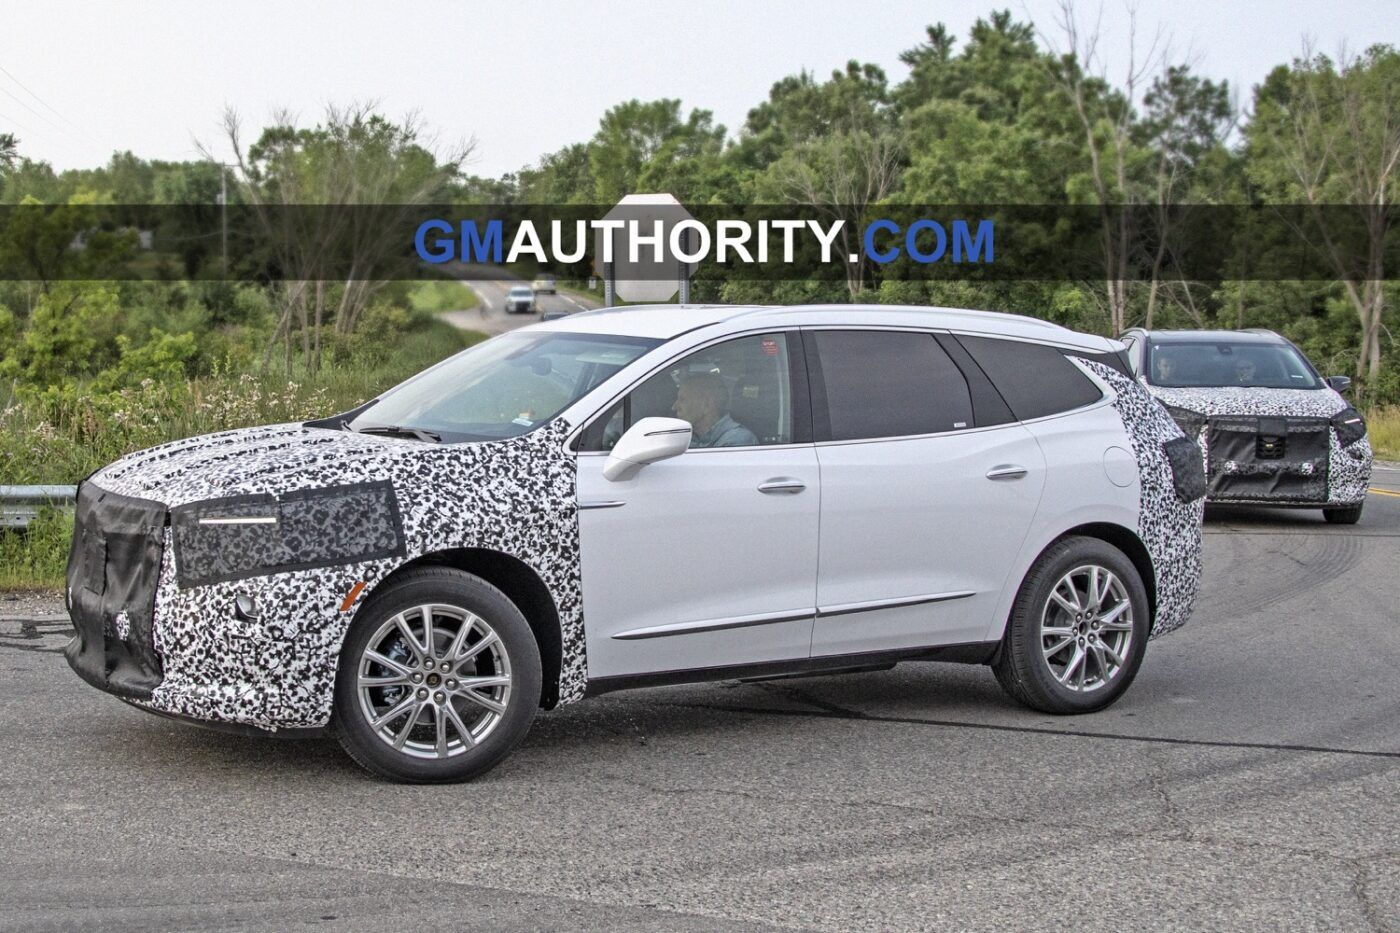 The Upcoming 2021 Buick Enclave Has Been Spied Testing And Some Changes Are Happening From The Very First Seen Pictures The In 2020 Buick Enclave Buick Buick Encore